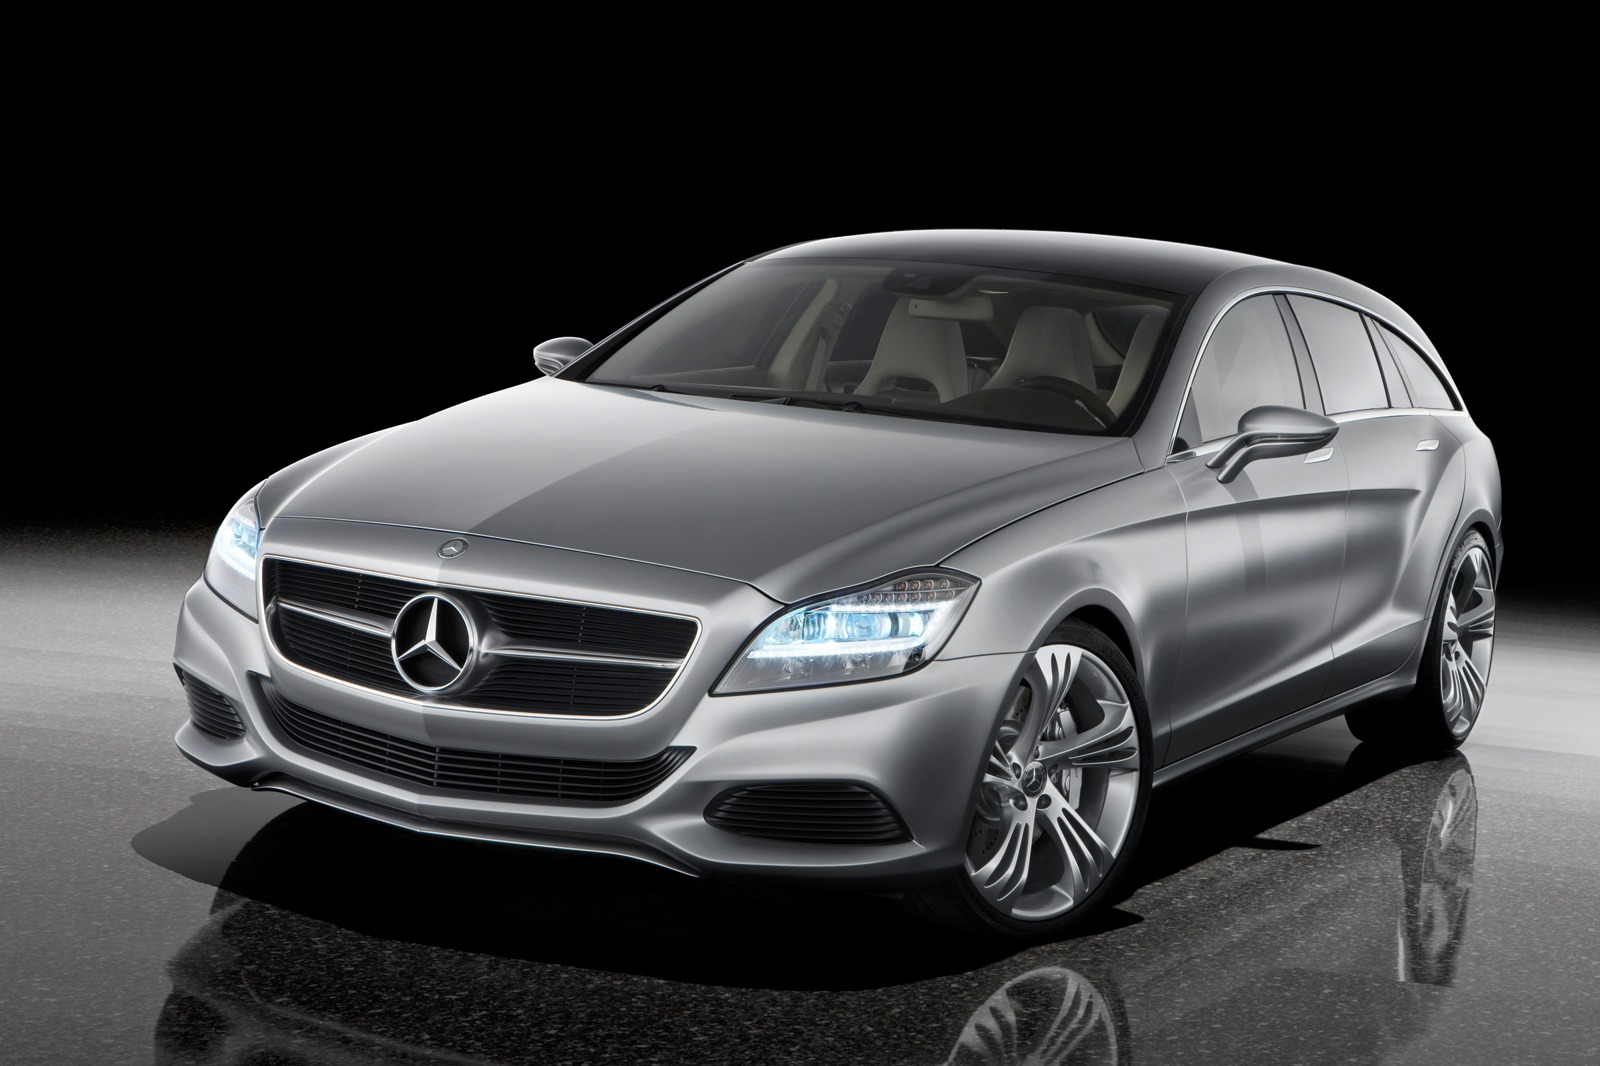 Brochure images of the 2011 Mercedes Benz CLS have leaked onto the internet. All photos and details on Motoroids.com